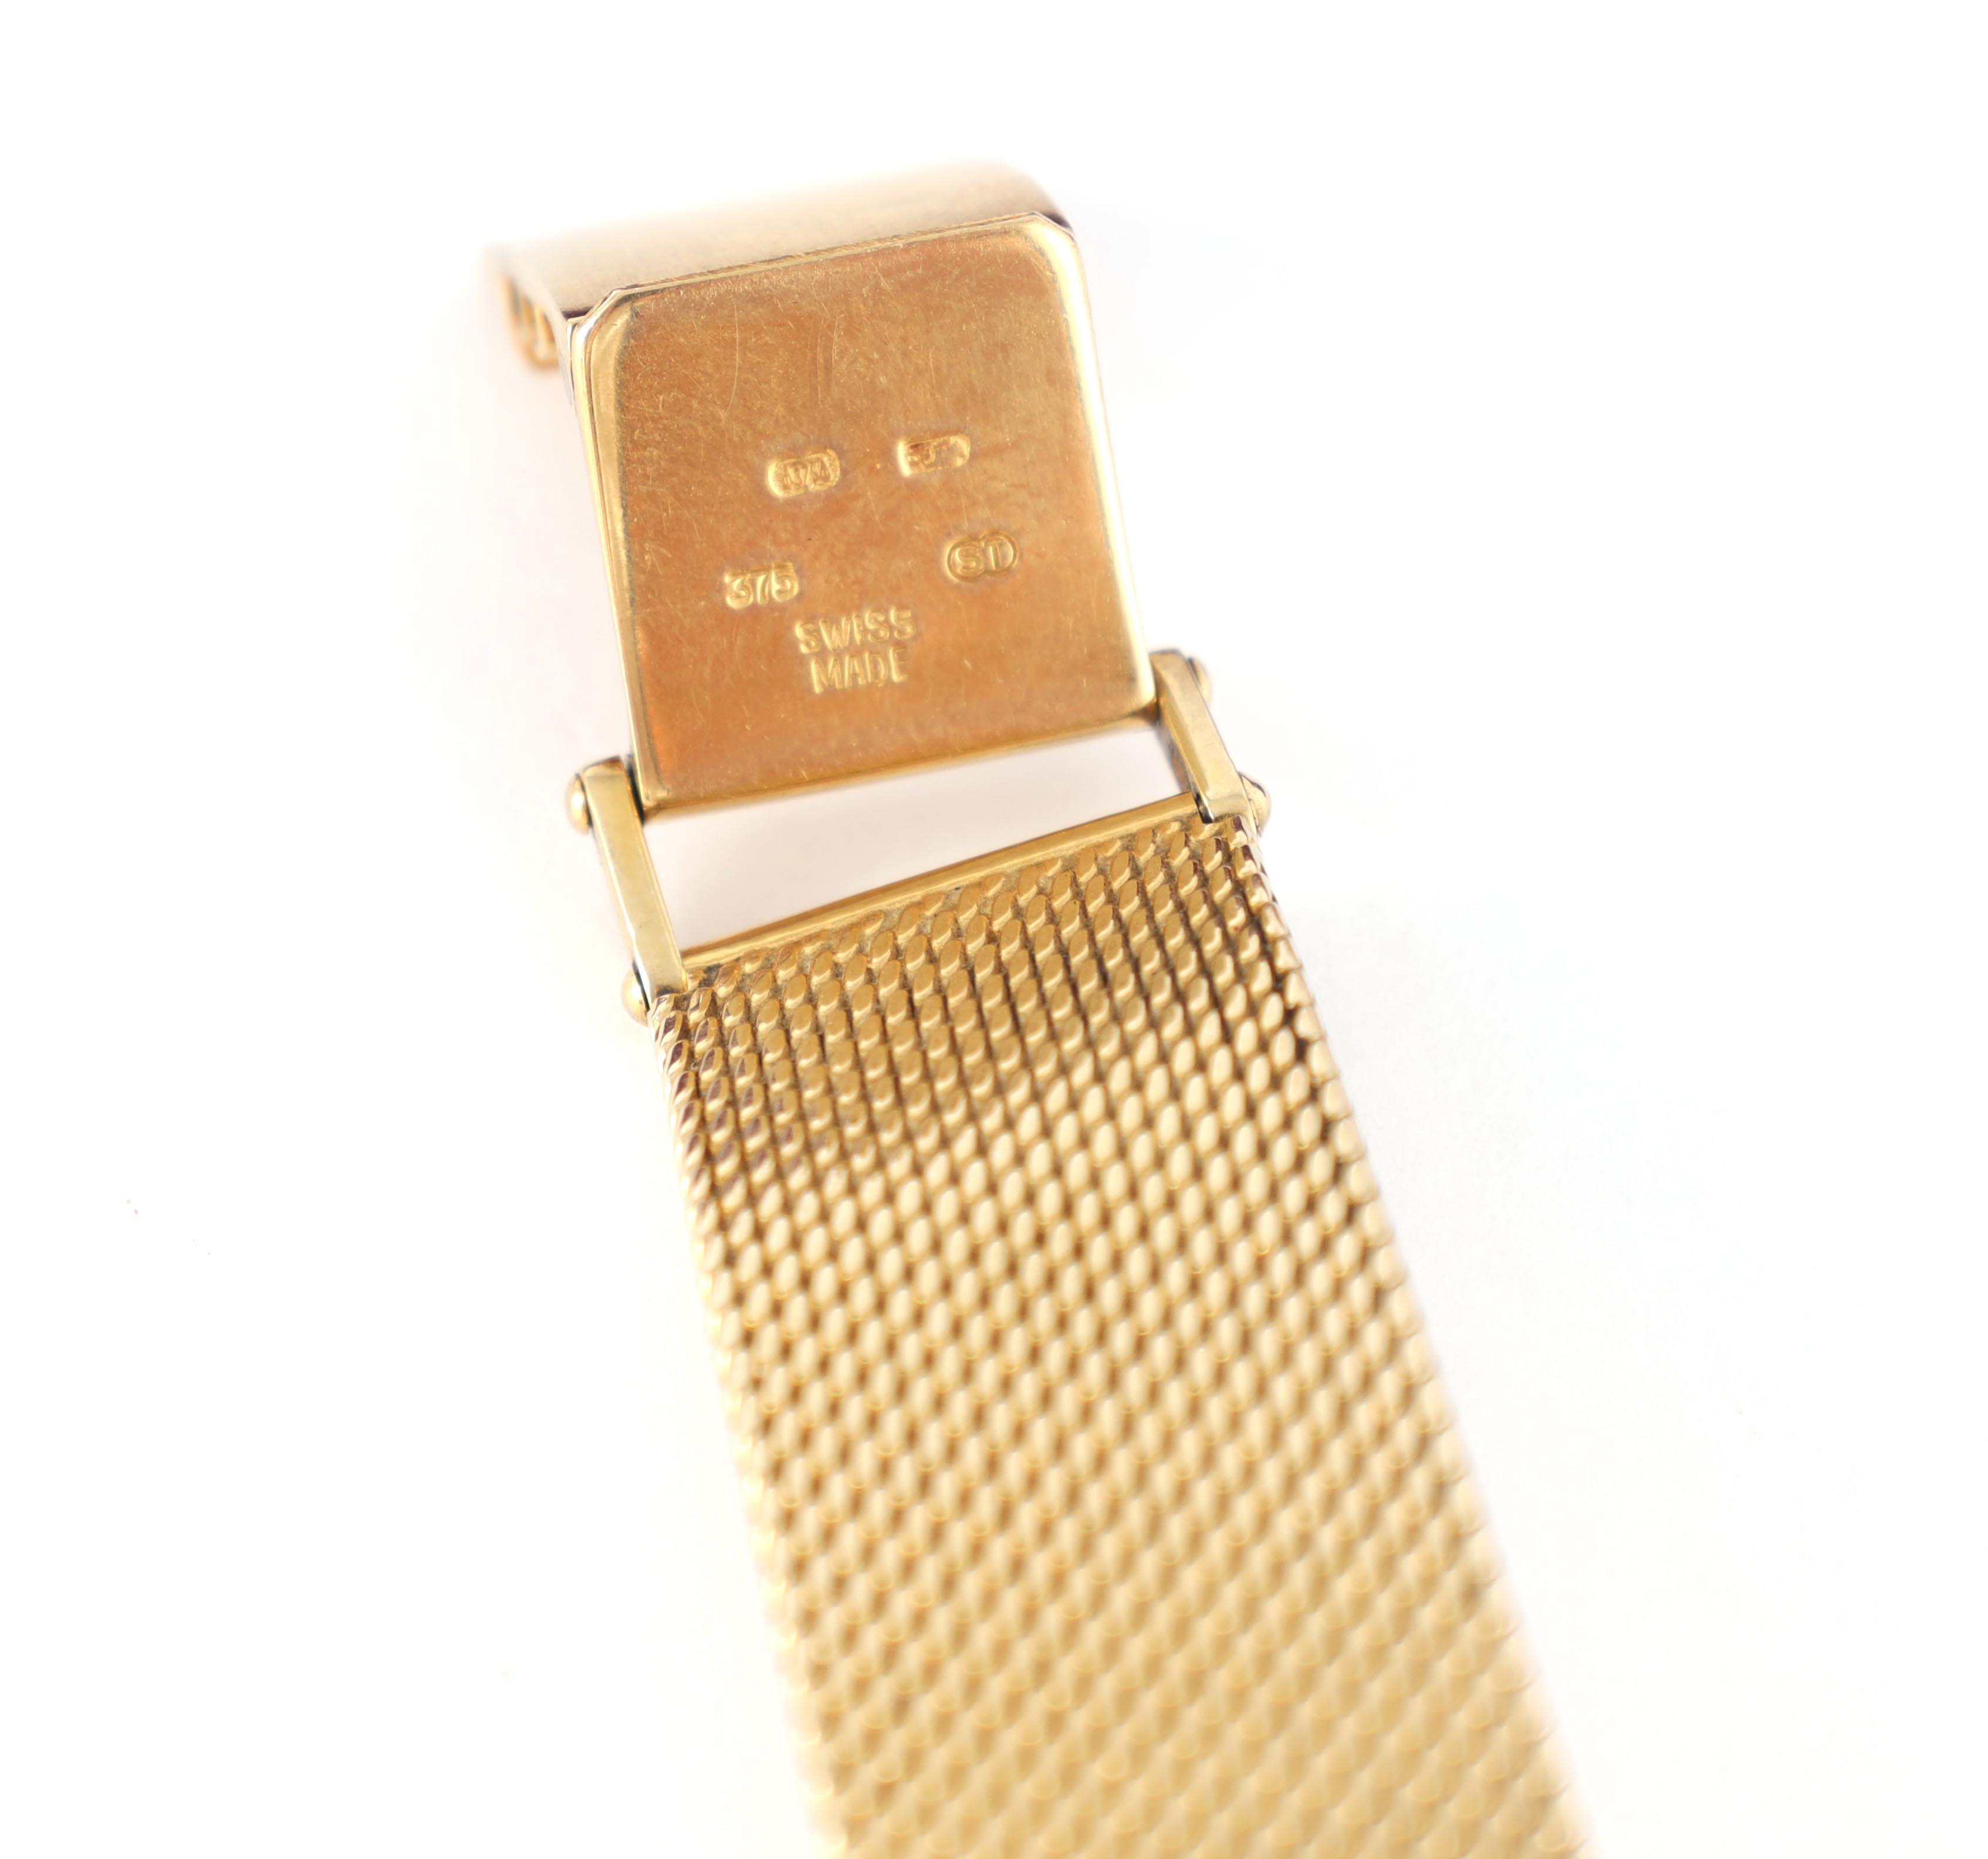 A GENTLEMAN'S 9CT GOLD SEIKO WRISTWATCH on original 9ct gold bracelet The white enamel dial with - Image 8 of 8